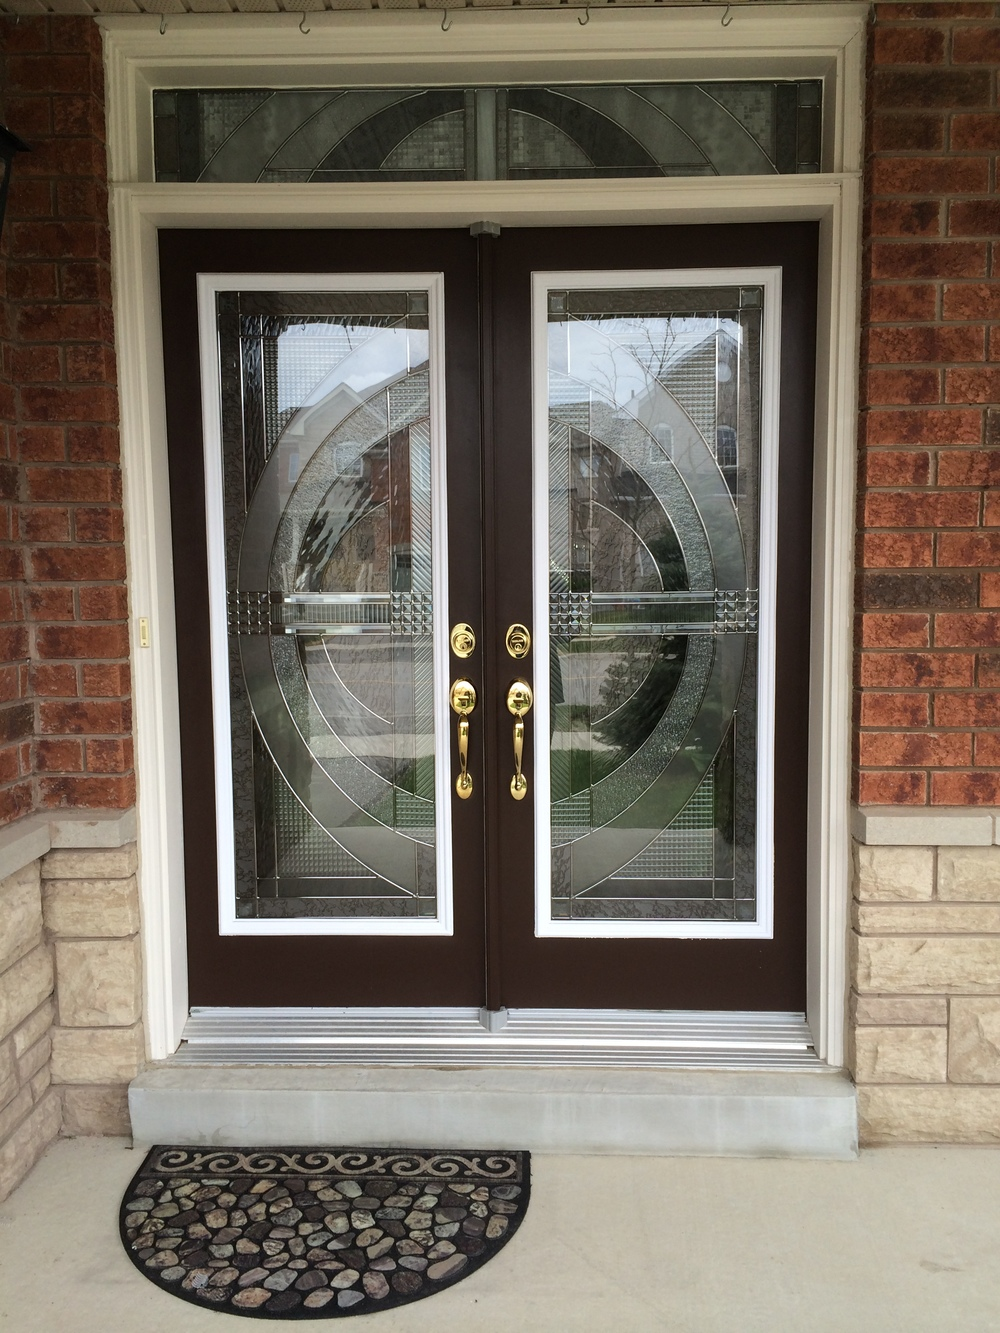 Decorative Glass Door Inserts : Decorative glass inserts photo gallery — distinctive